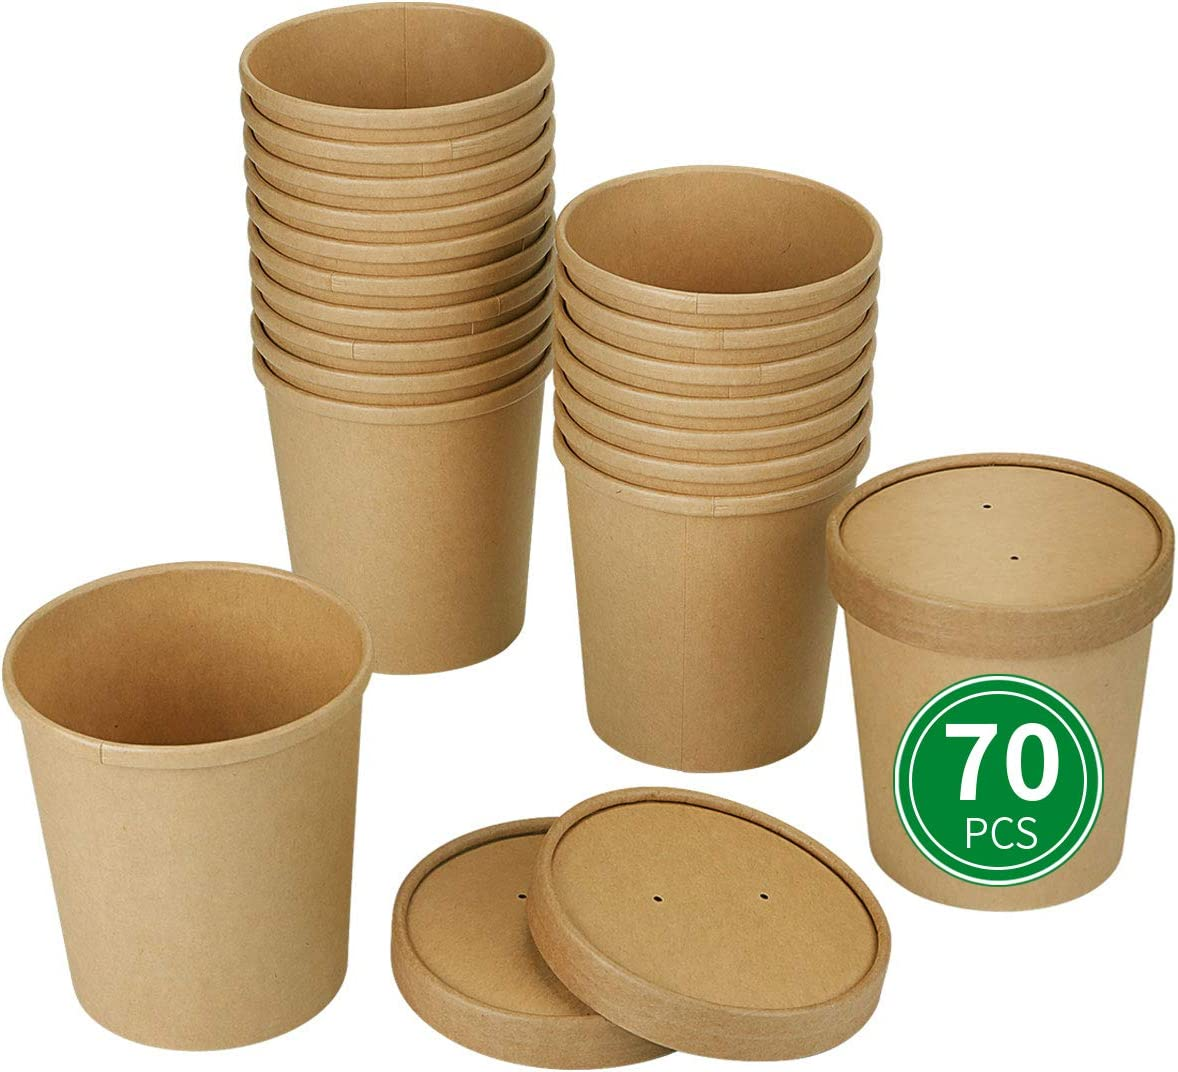 Bloomoon Take Out Containers with Lids 16oz (70 pack) Disposable Heavy Duty Kraft Paper Soup Containers, Ice Cream Cups, Togo Boxes, Catering Party Supplies